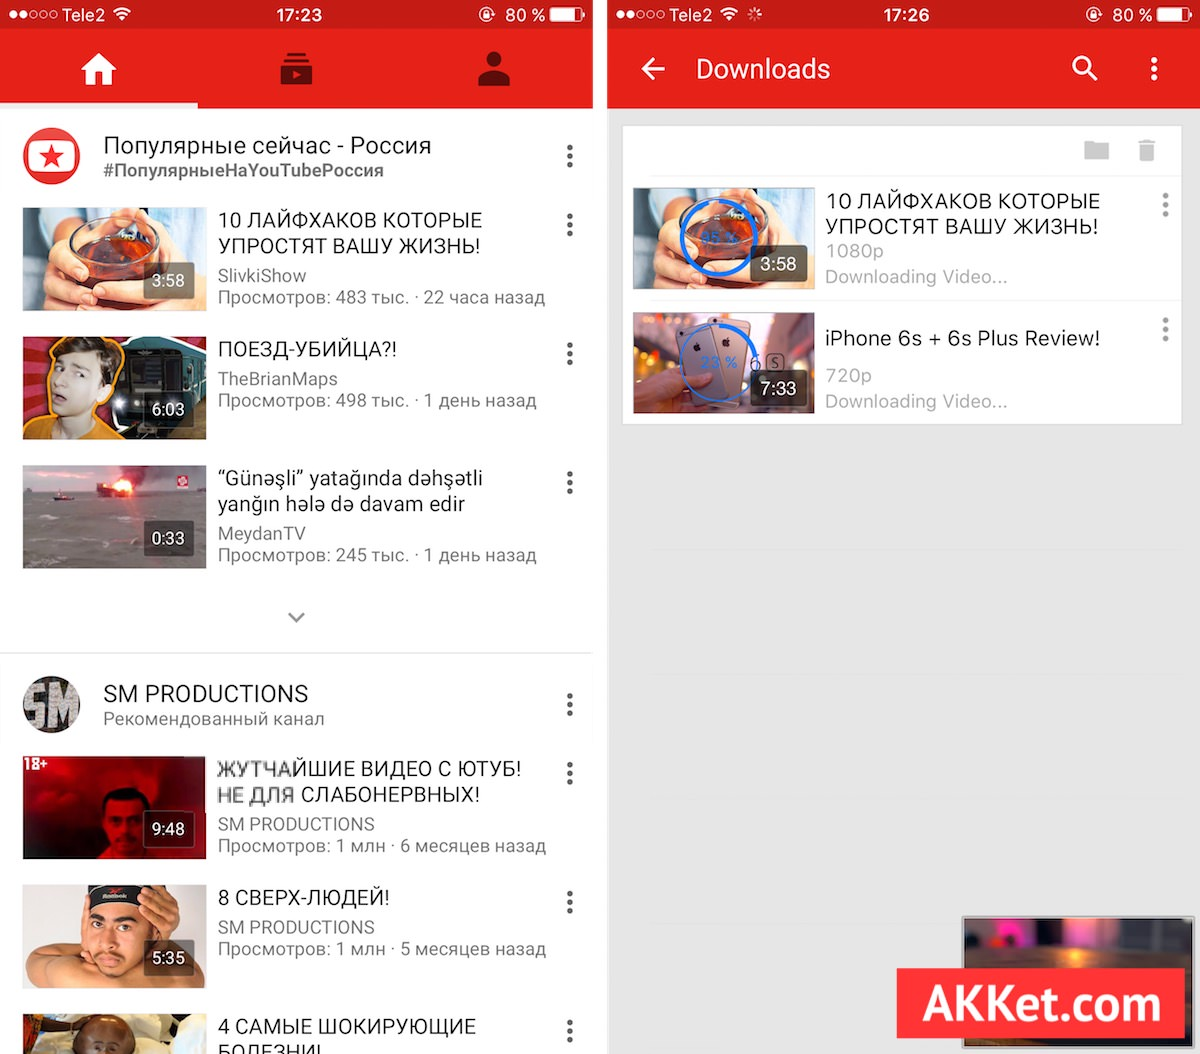 YouTube Download iOS 9 Cydia Tweak 3